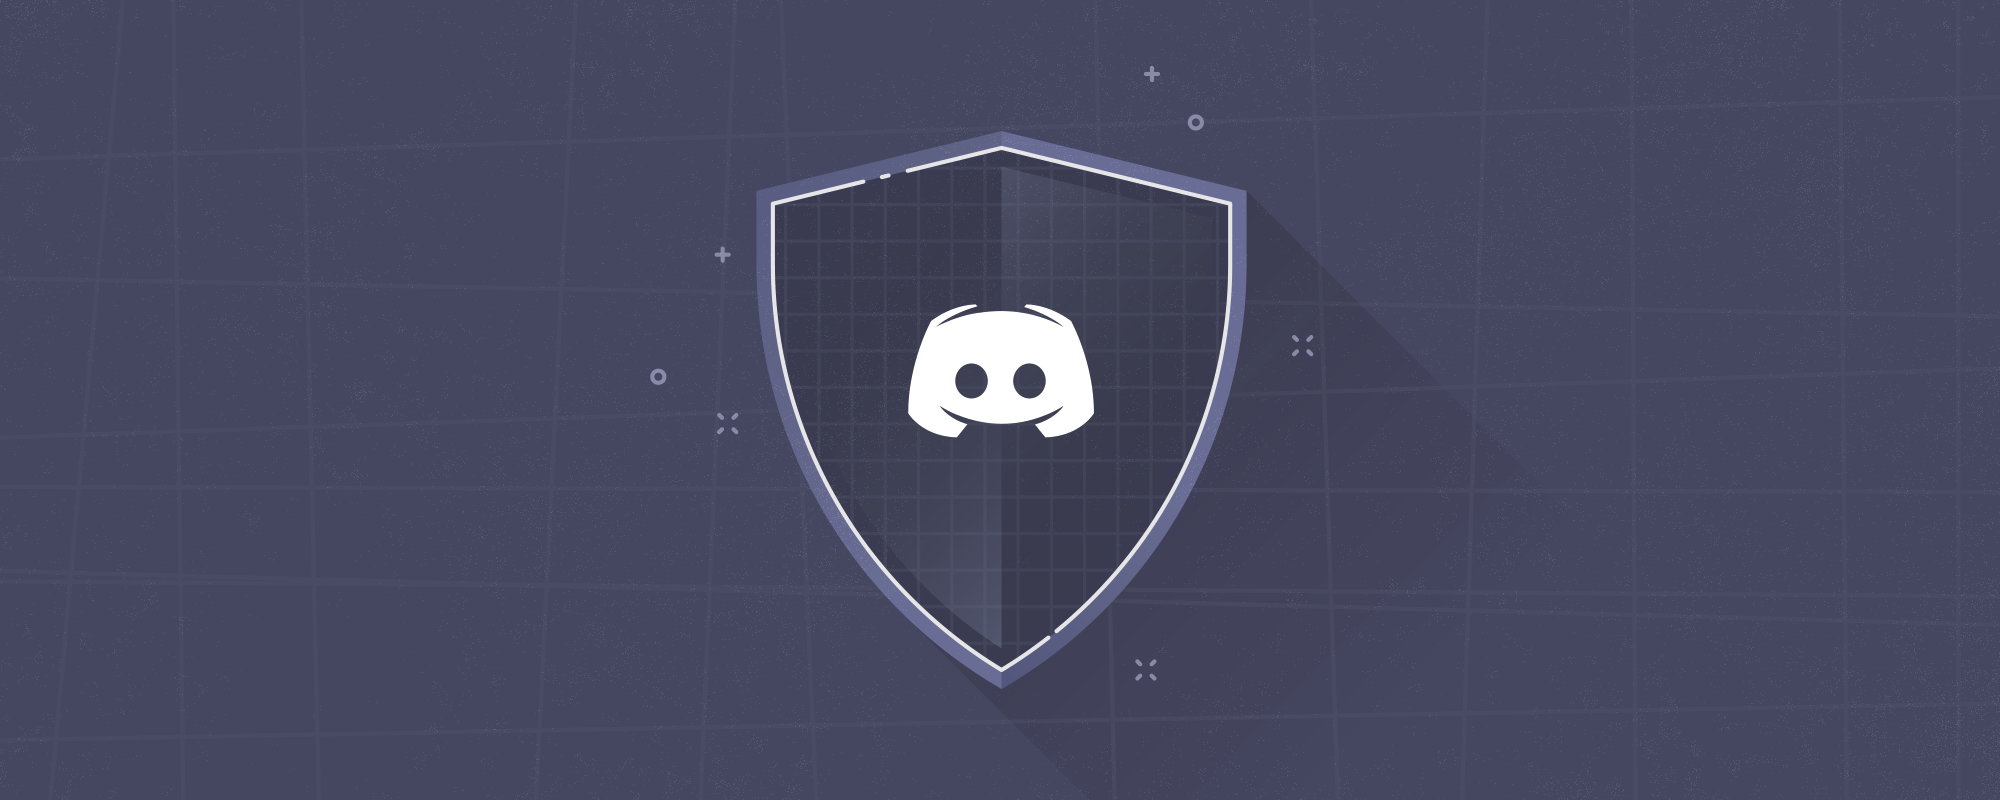 Discord Safety Boost Blog How Do You Draw A Ninja Star Apps Directories